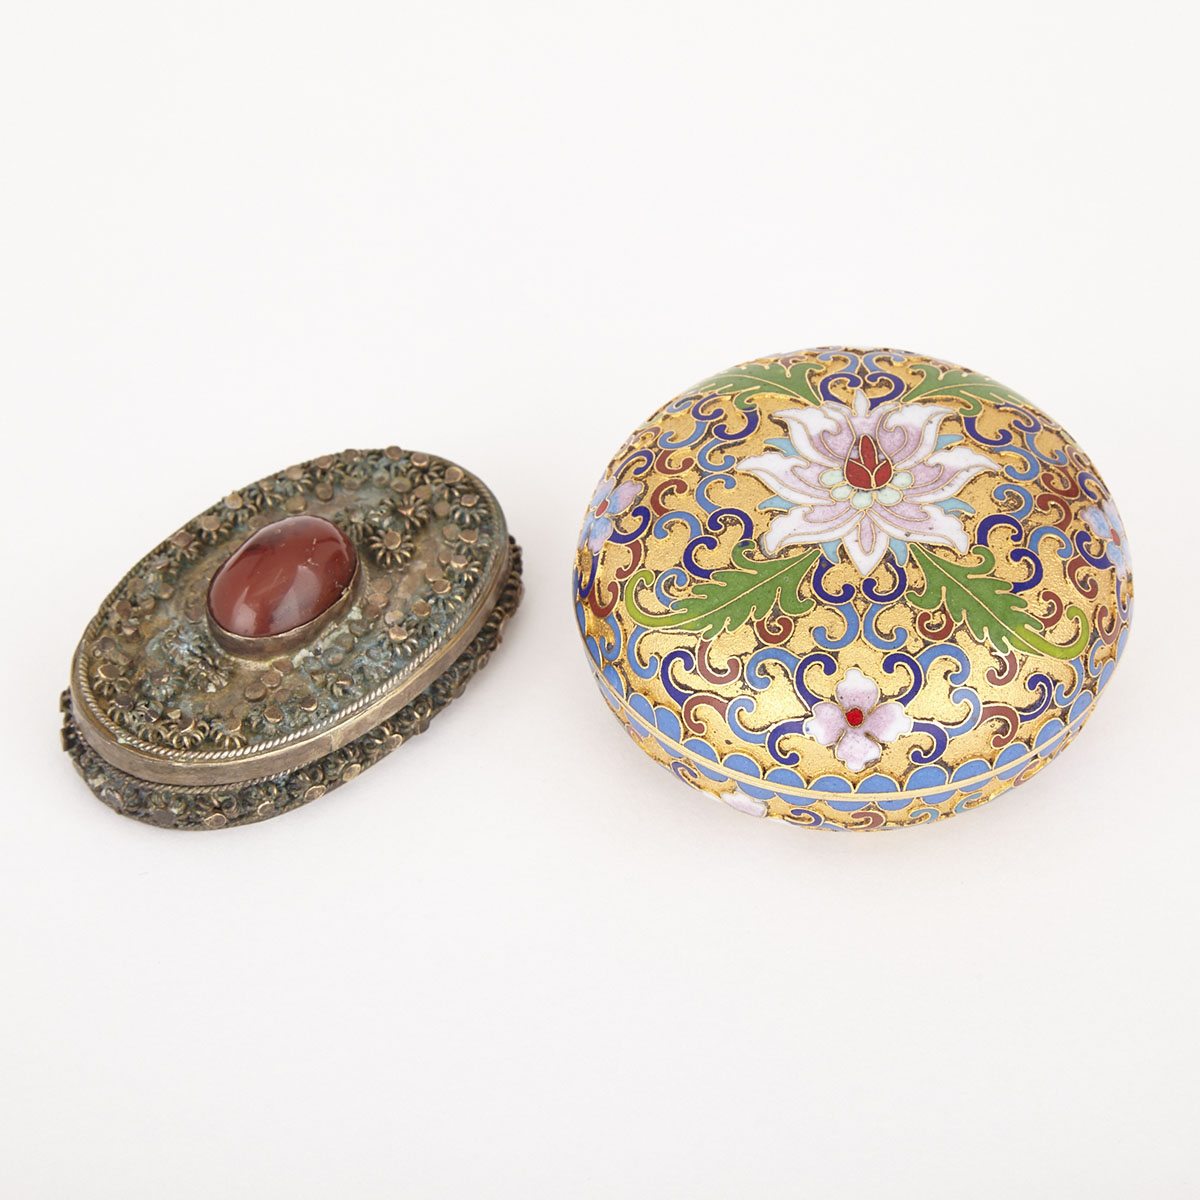 A Persian Cloisonne Cosmetic Box and a Canton Cloisonne, 19th and 20th Century